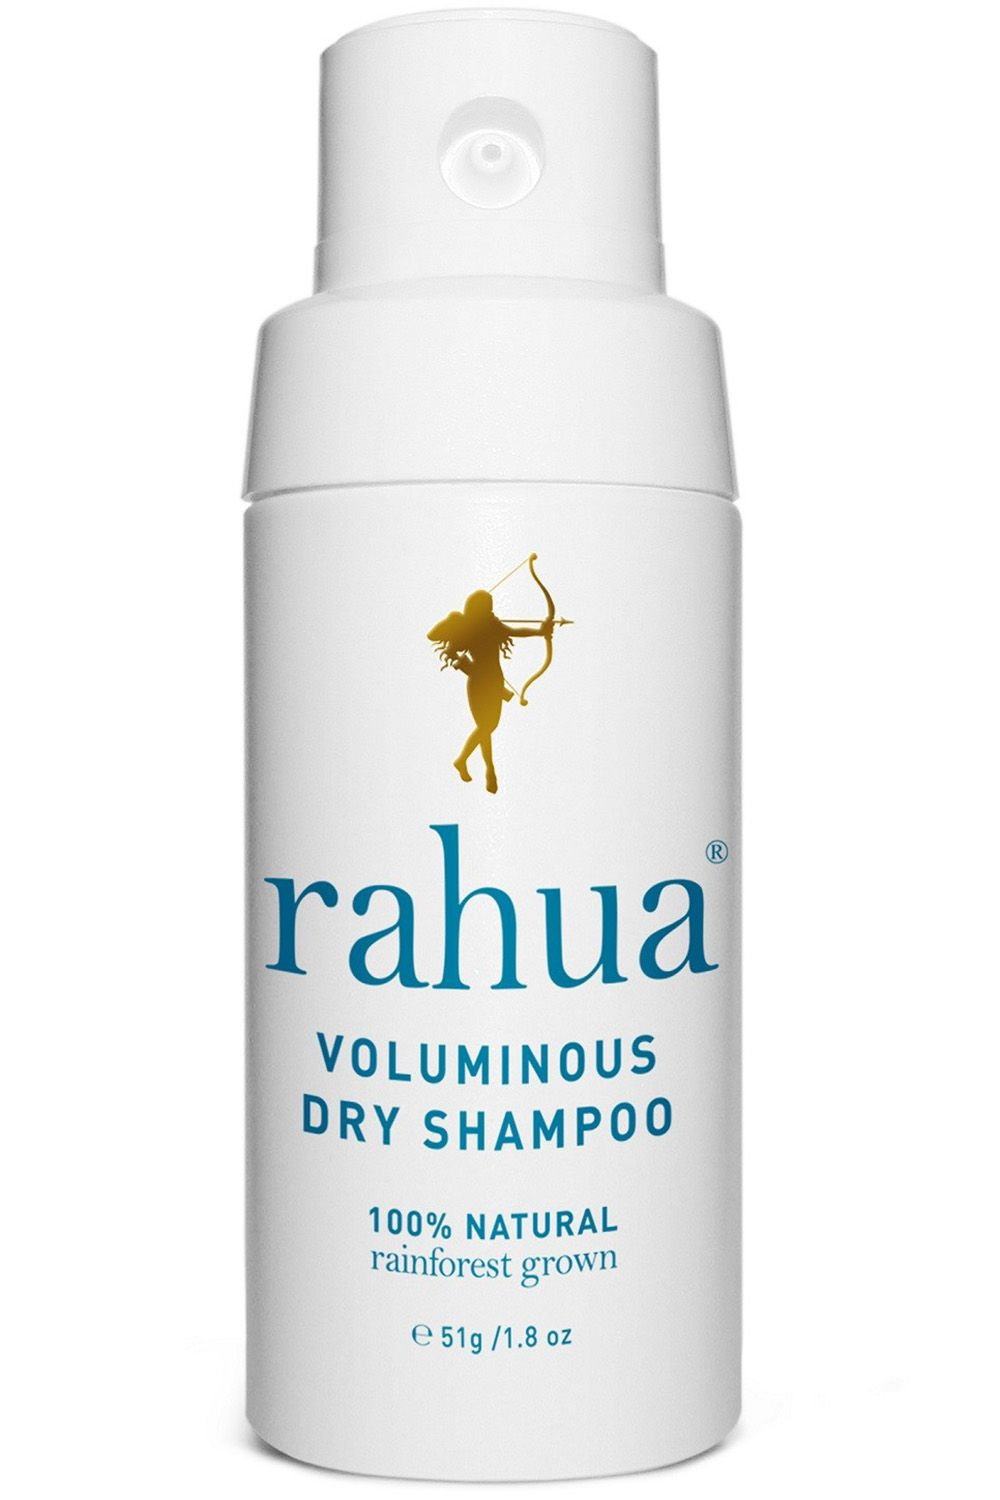 """<p>Vegan, gluten-free and organic, this is as hippie-dippie as a hair product can get. Not only that, it works. </p><p><strong>Rahua</strong> Voluminous Dry Shampoo, $32, <a href=""""https://rahua.com/us/rahua-voluminous-dry-shampoo.html/"""" target=""""_blank"""">rahua.com</a>.</p>"""